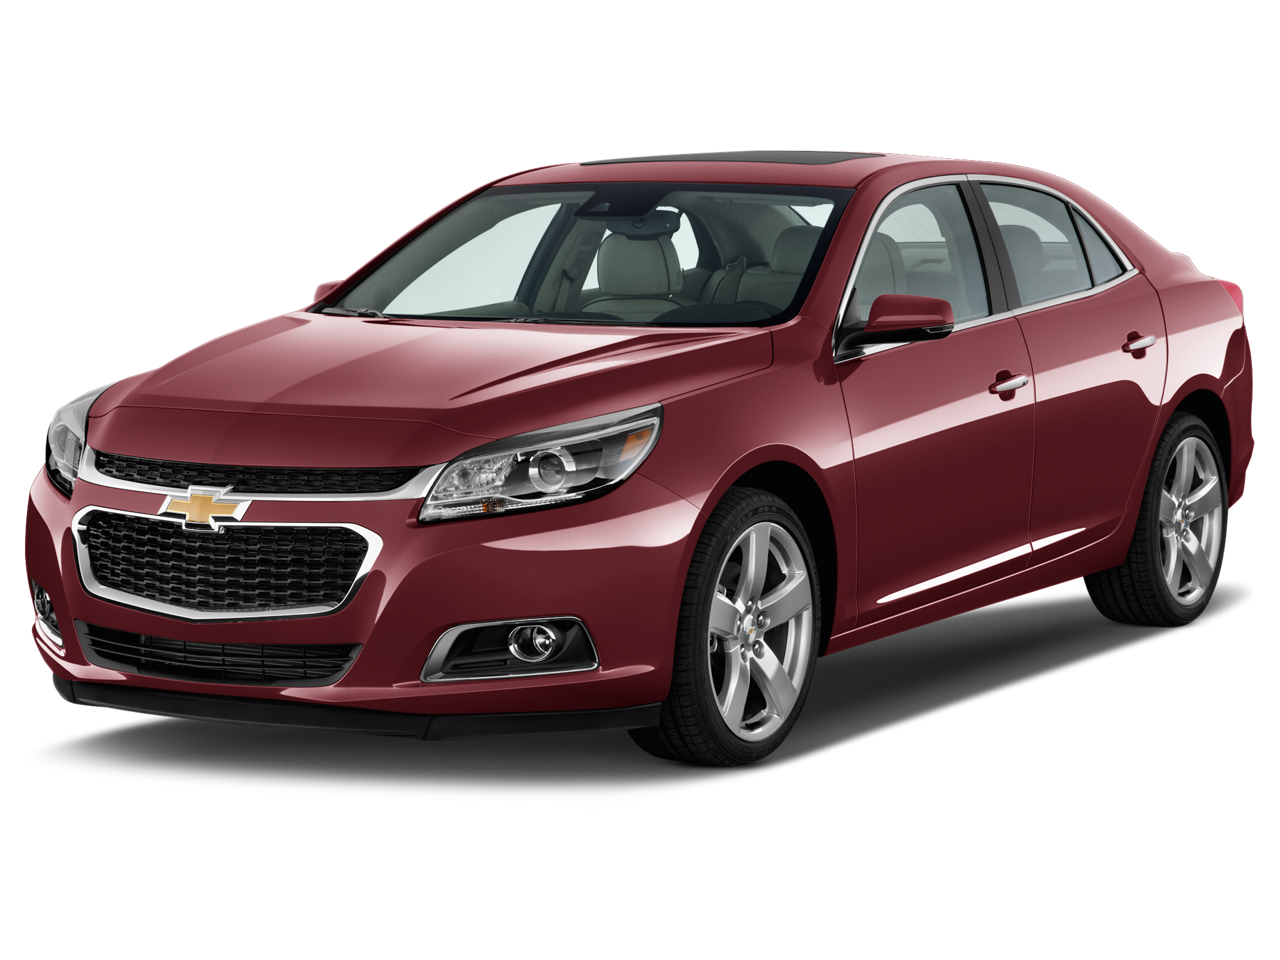 used 2015 chevrolet malibu lt 2lt near fenton mi family deal. Black Bedroom Furniture Sets. Home Design Ideas